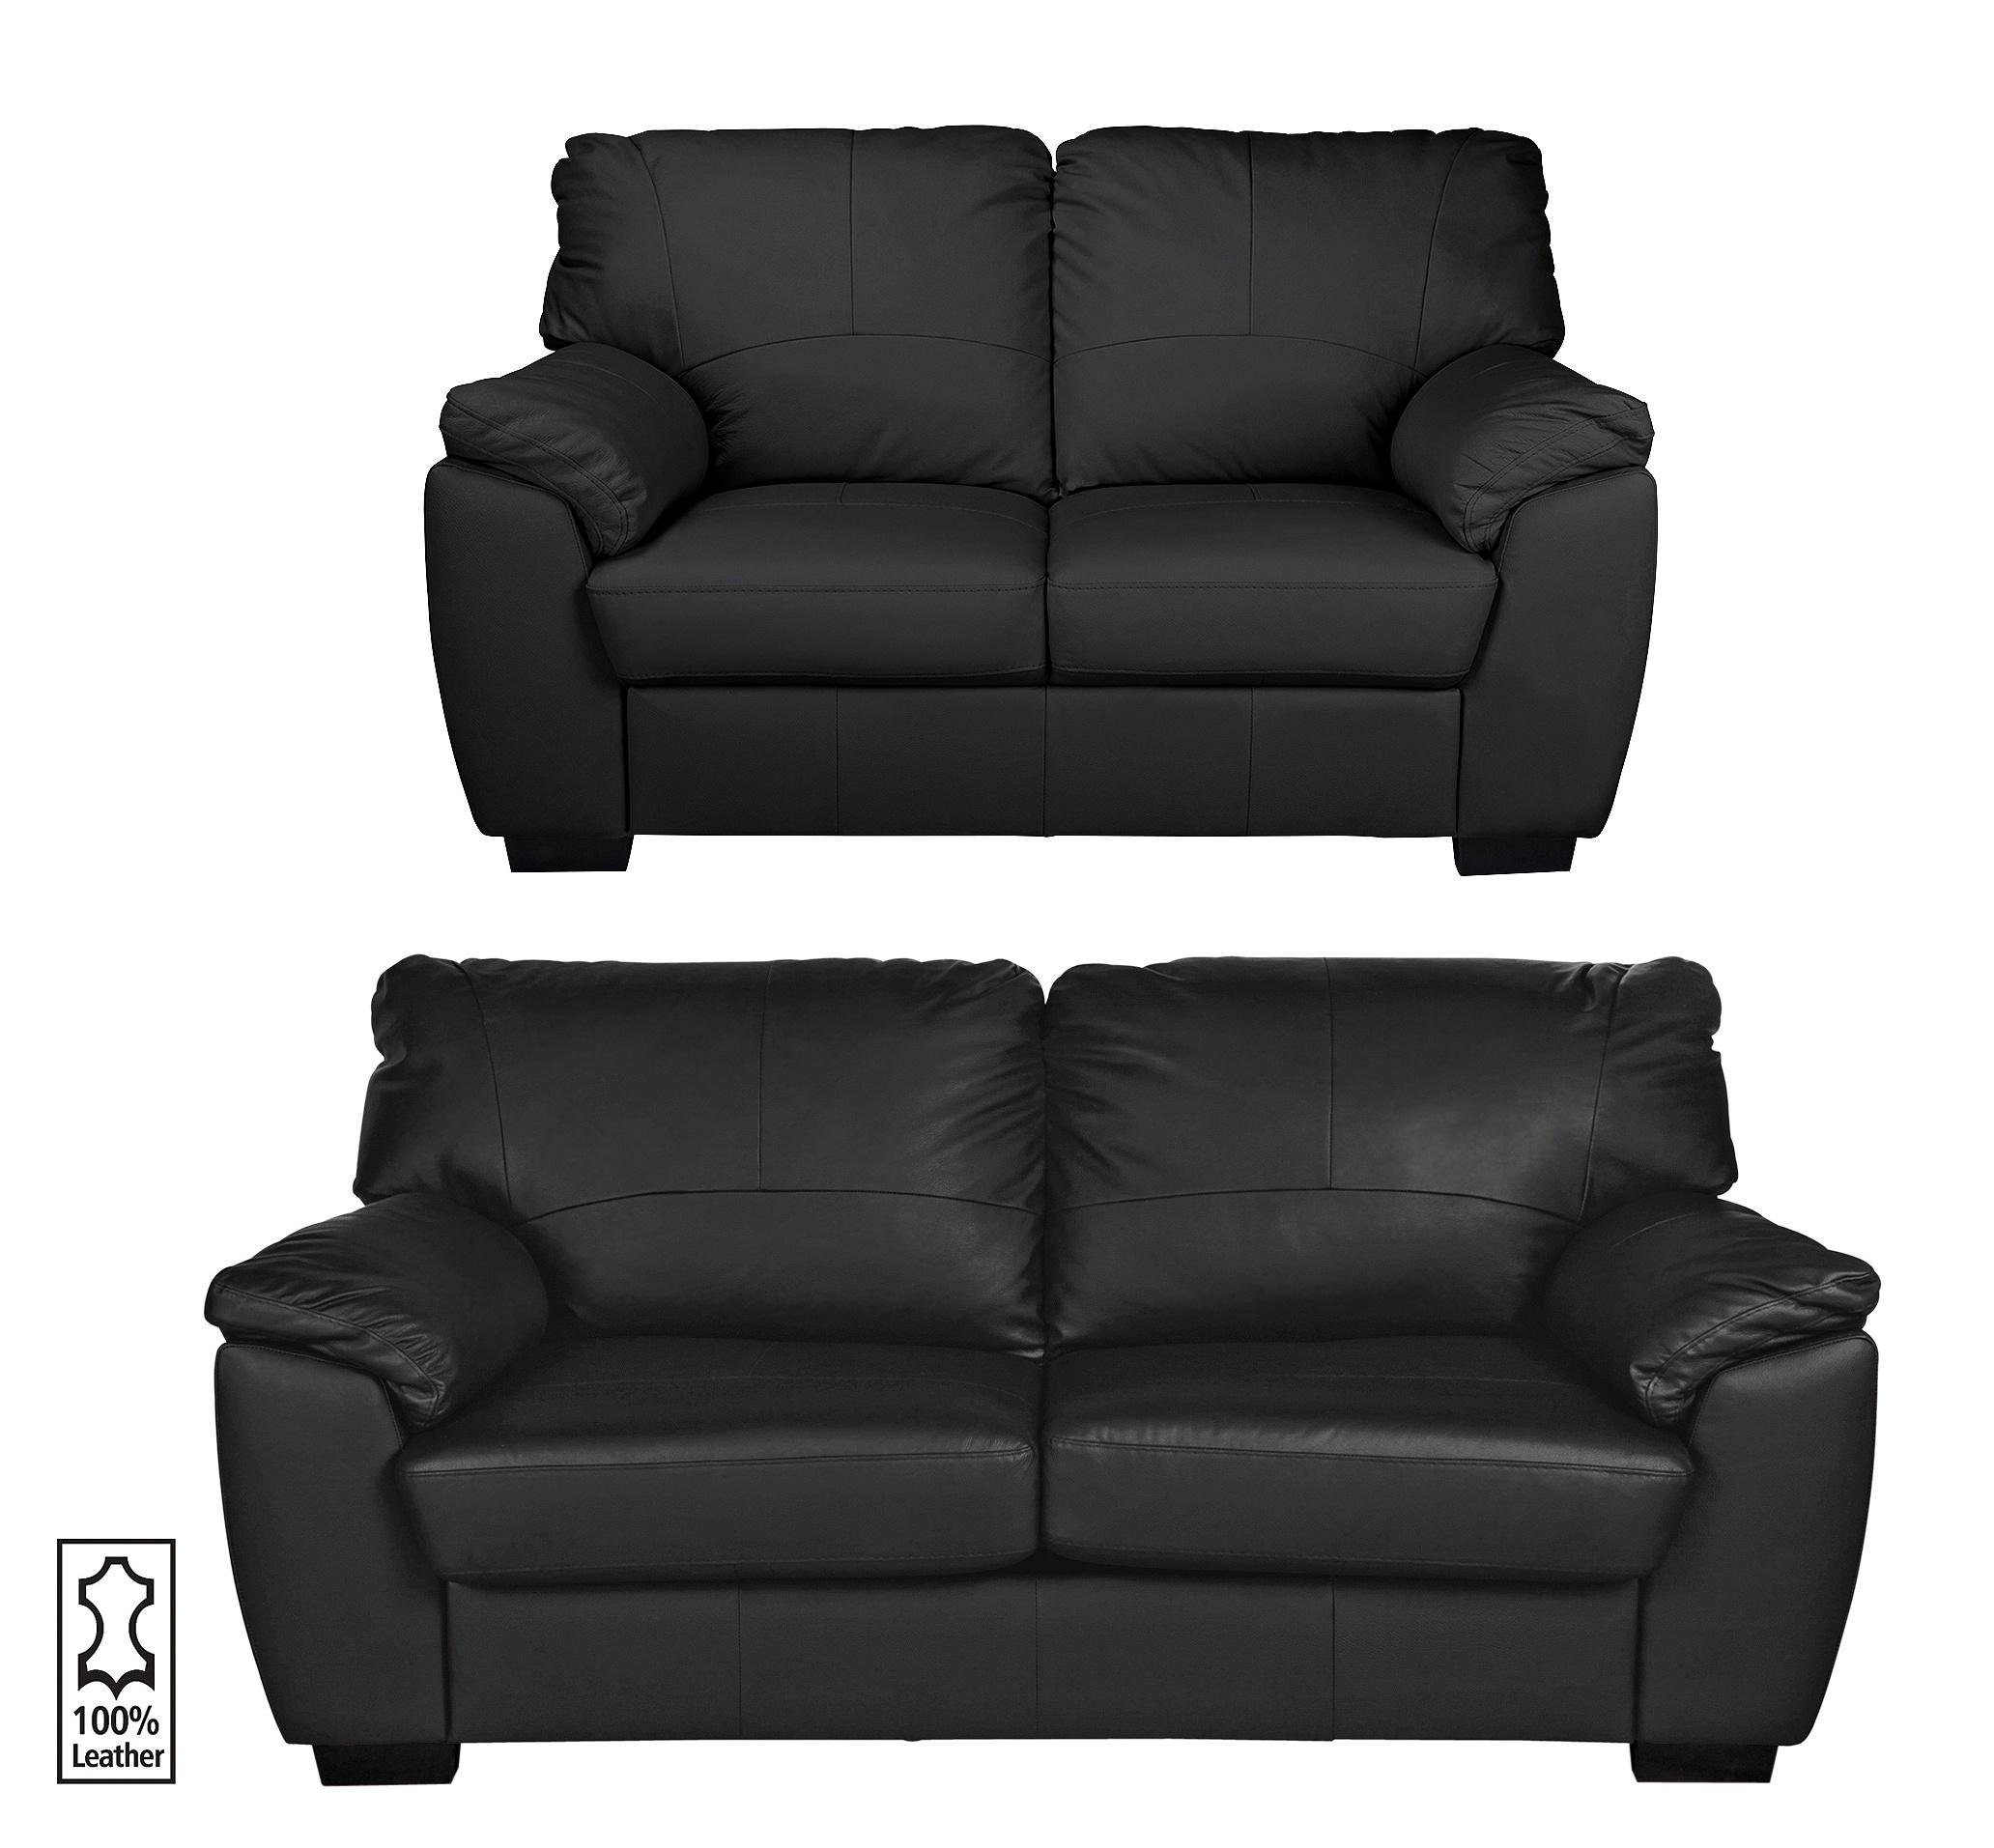 Collection Milano Leather 3 Seater \u0026 2 Seater Sofa - Black  sc 1 st  Argos & Buy Collection Milano Leather 3 Seater \u0026 2 Seater Sofa - Black at ... islam-shia.org